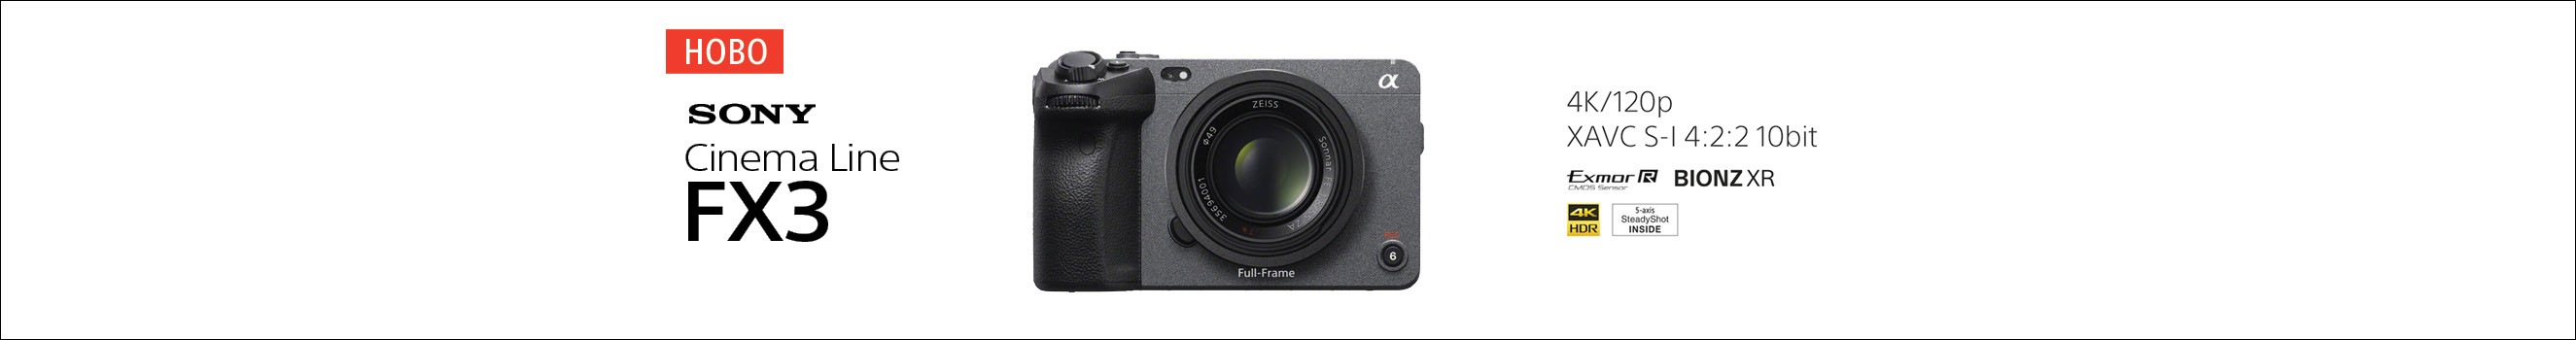 Sony FX3 with Lens Discount and Extended Warranty